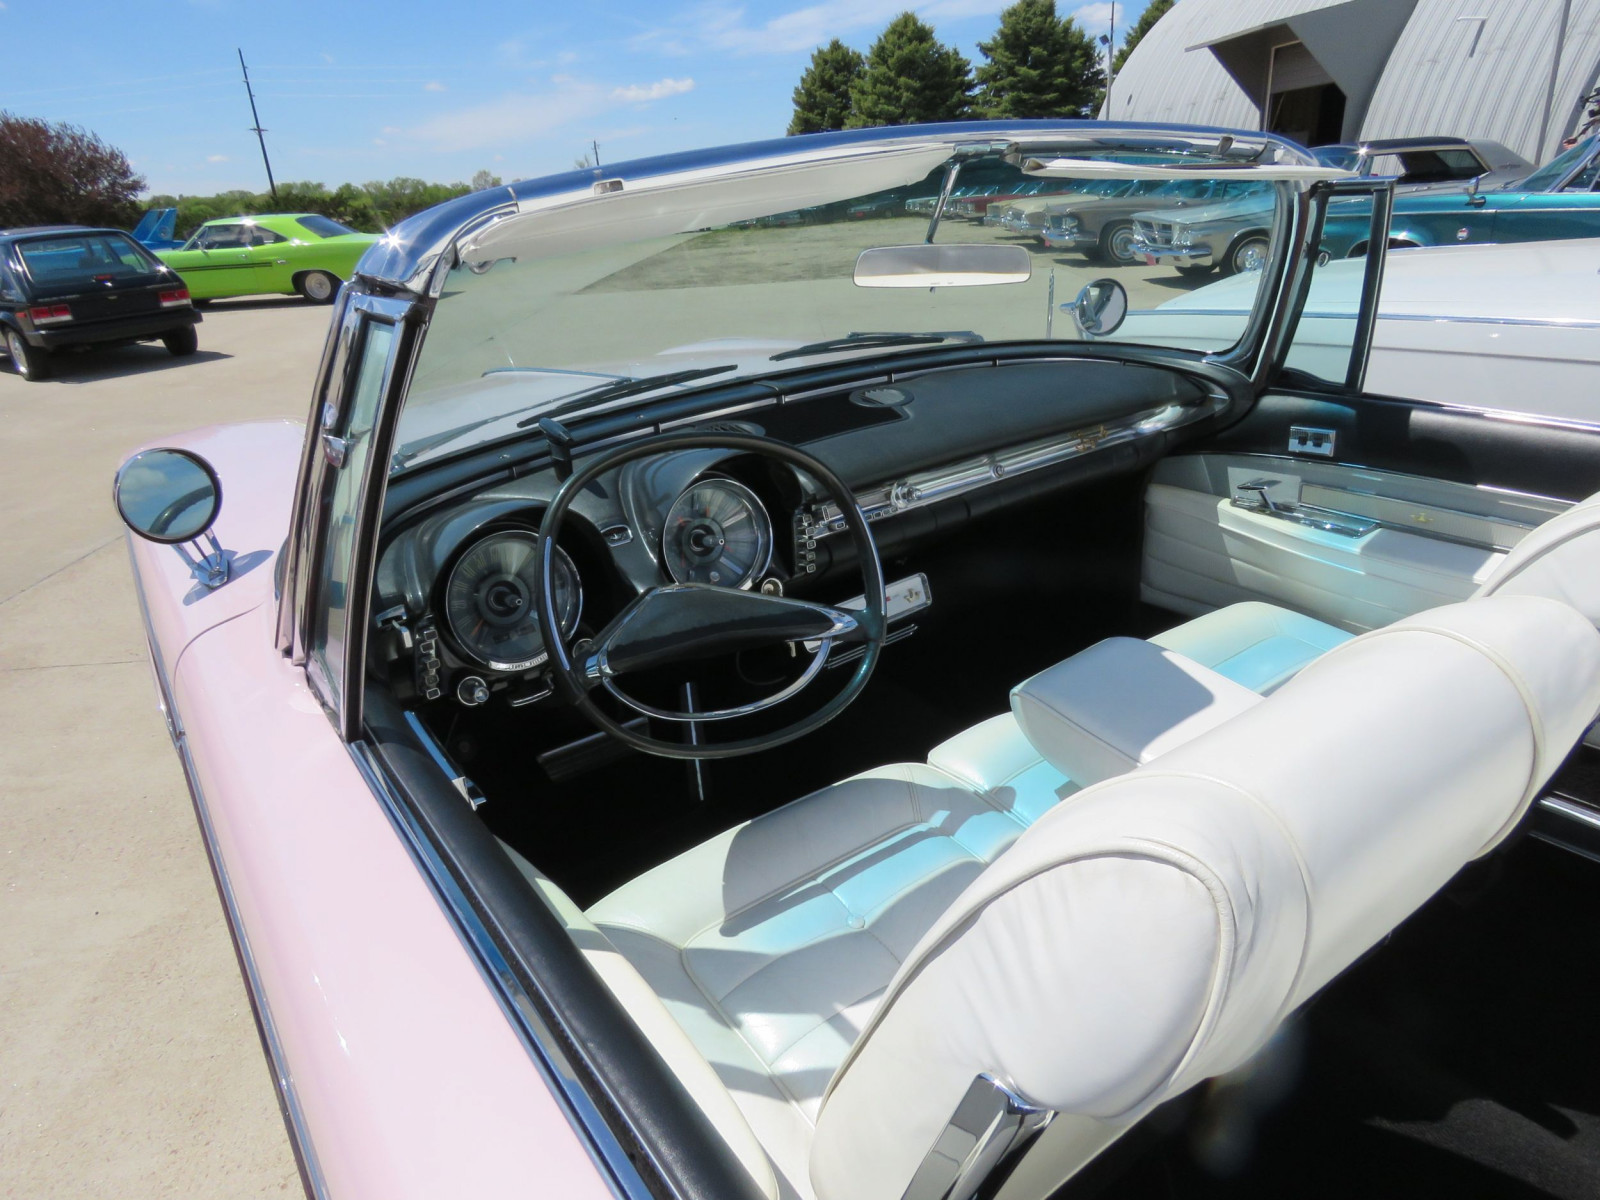 RARE 1960 Chrysler Imperial Crown Convertible - Image 11